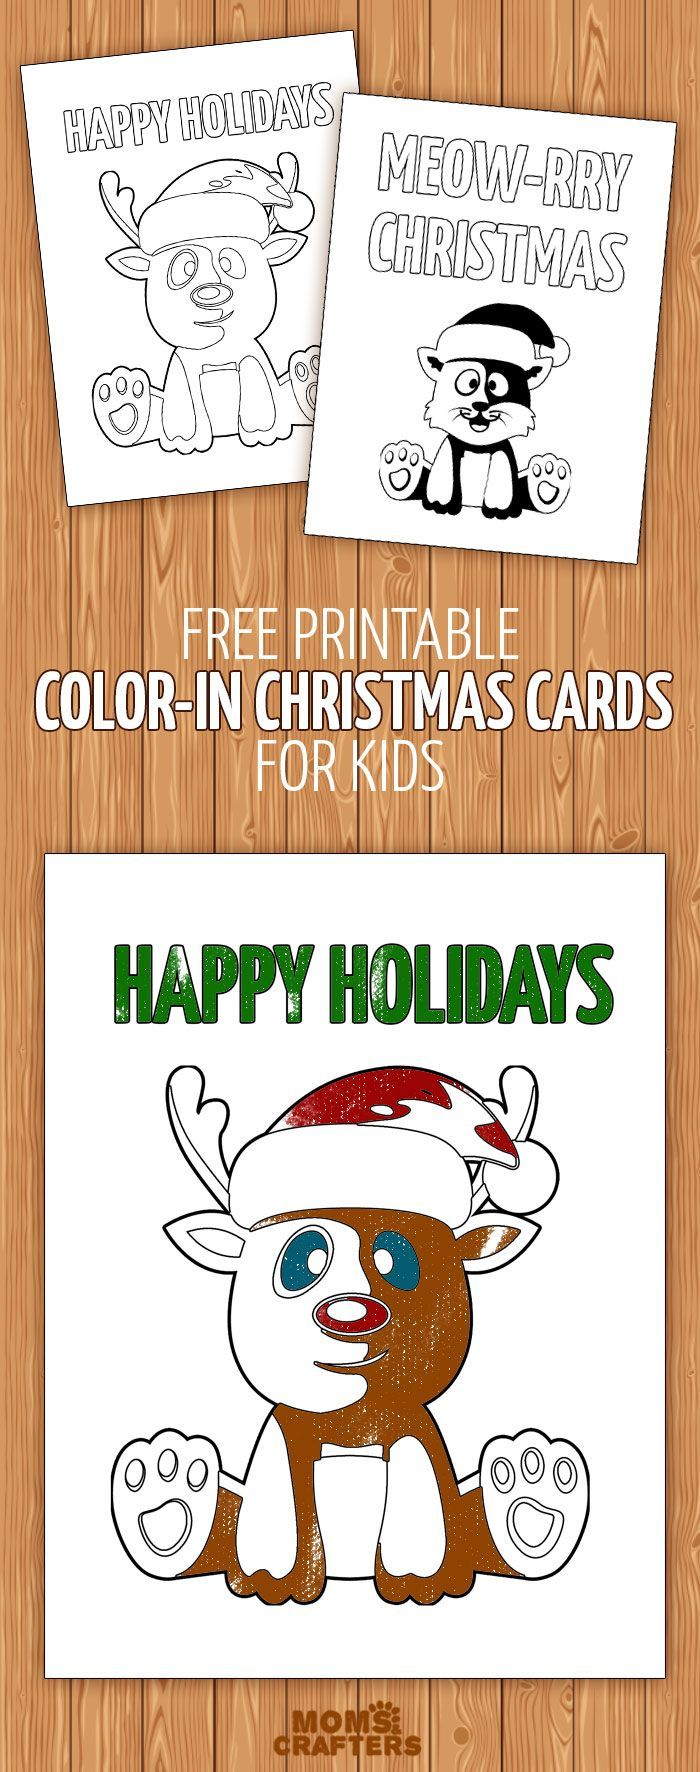 17 Best images about Free Printables